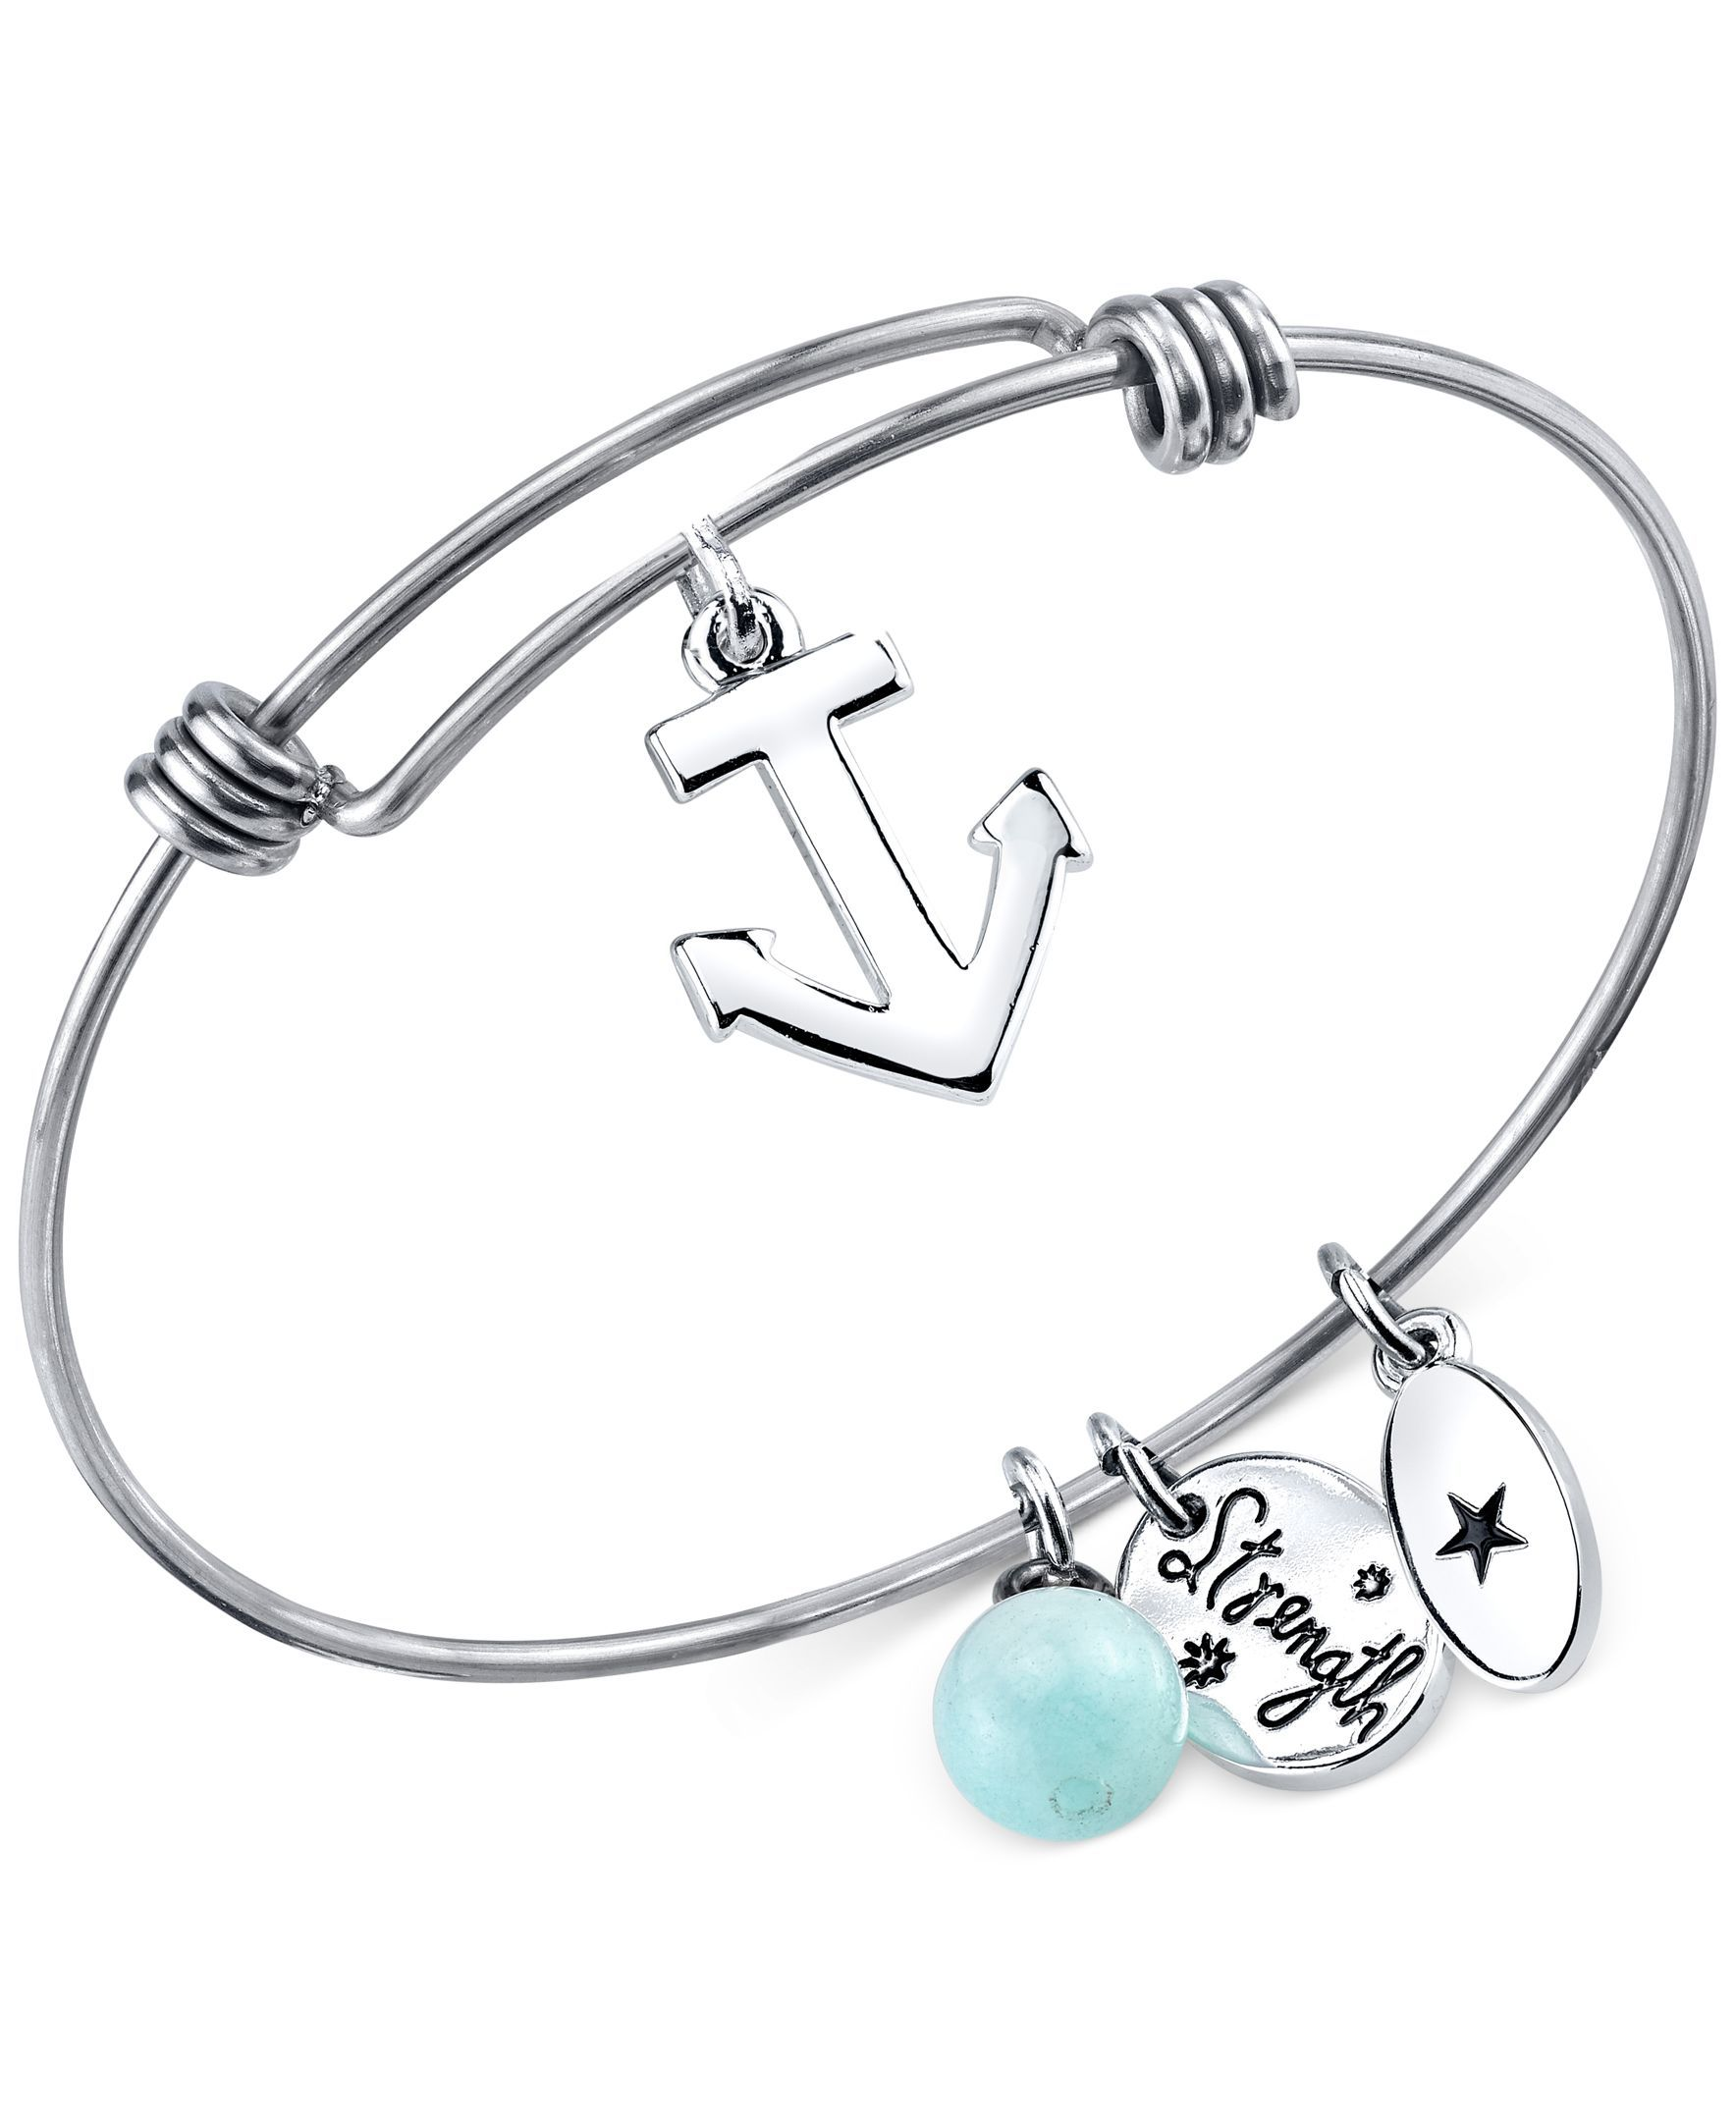 bracelets bangles kd bangle and cheerleader eg cheer name pom steel engraved stainless jewelry charm